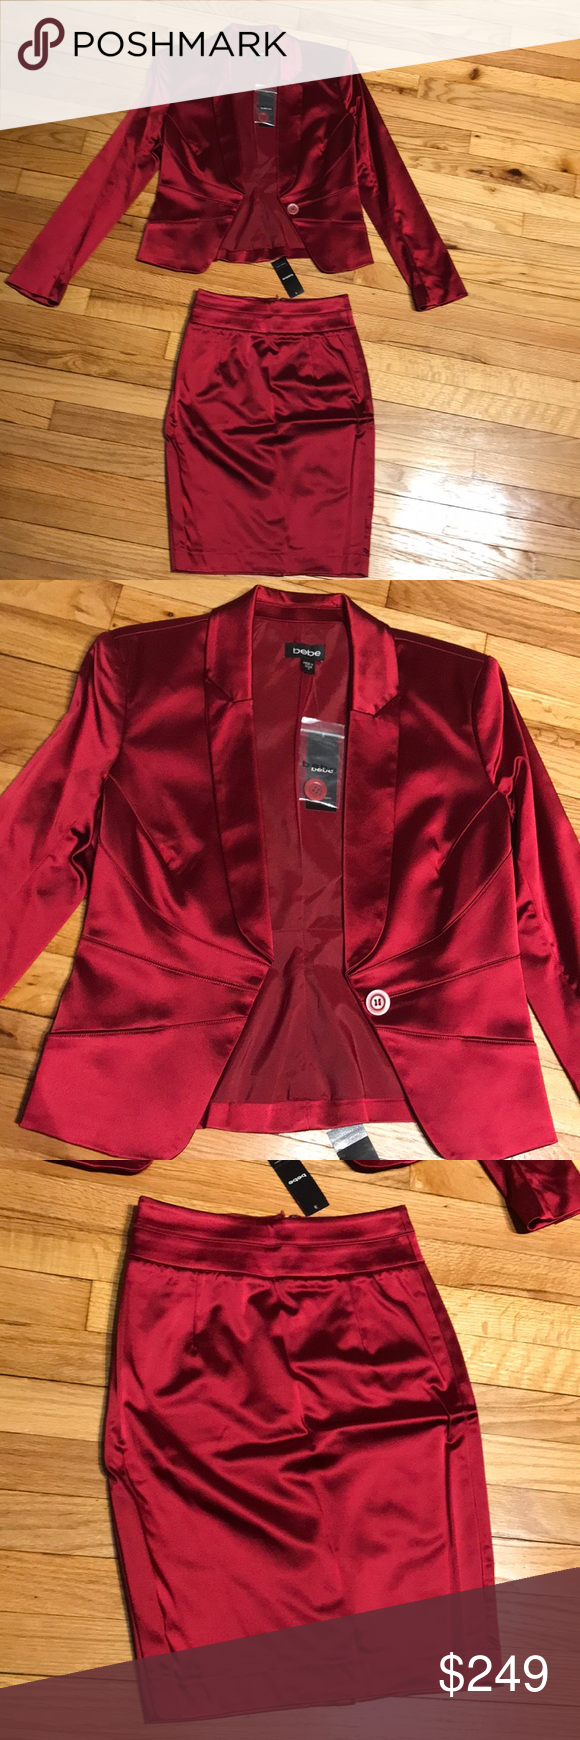 4e57a0ebfa Hot🔥Beautiful Elegant set 2 piece skirt suit red Beautiful set 2 pieces  skirt suit scarlet red shiny satin stretch sz 4 Bebe / pencil skirt bebe  Skirts ...